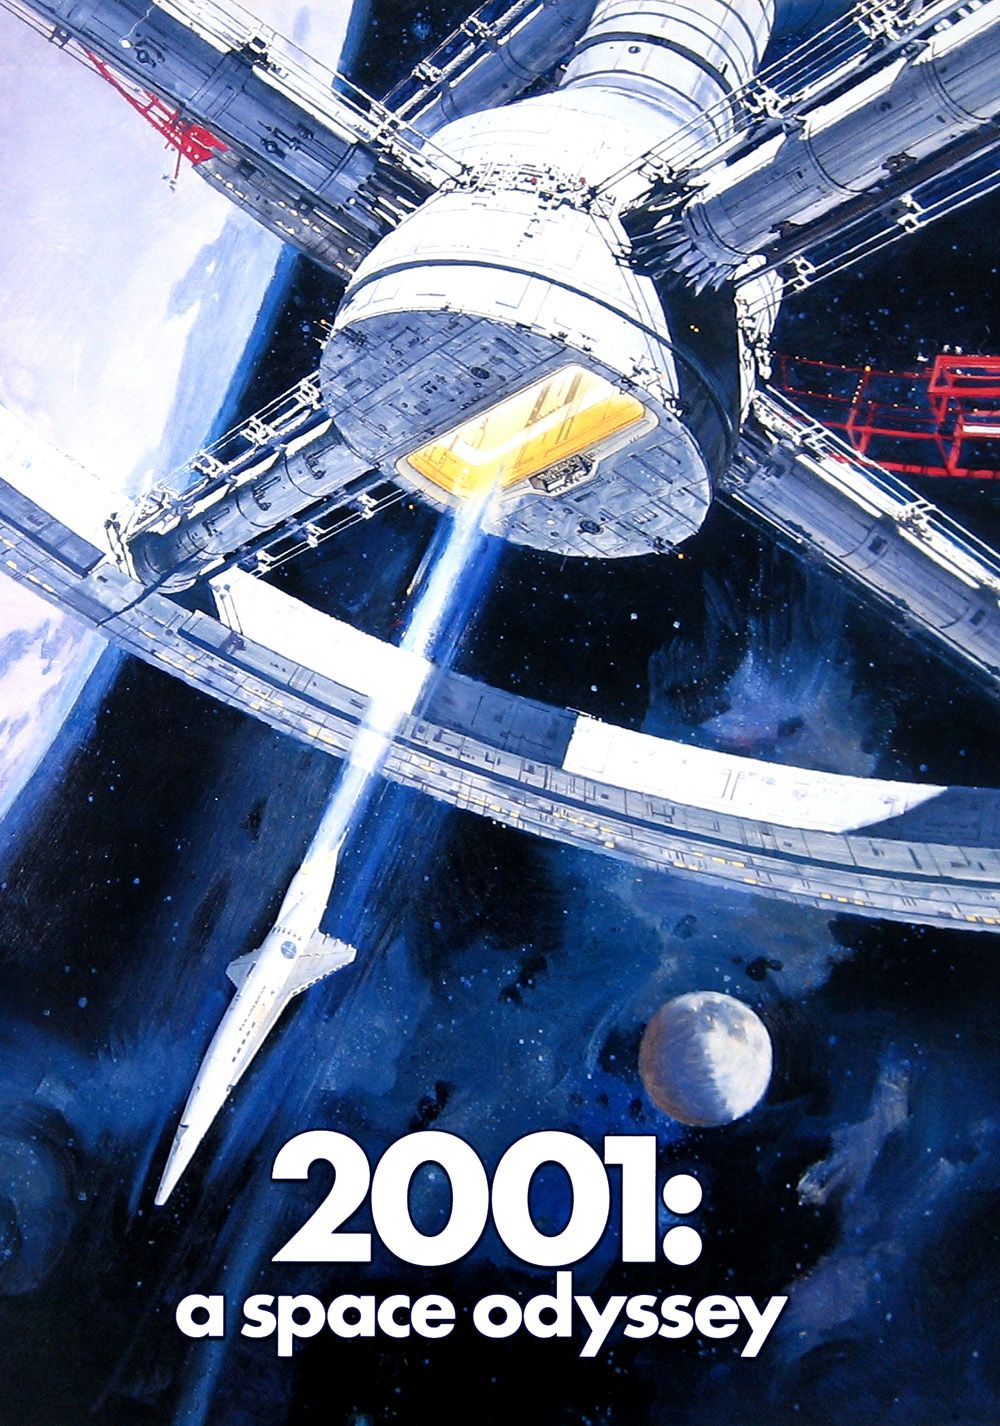 2001 a space odyssey movie poster image fanart